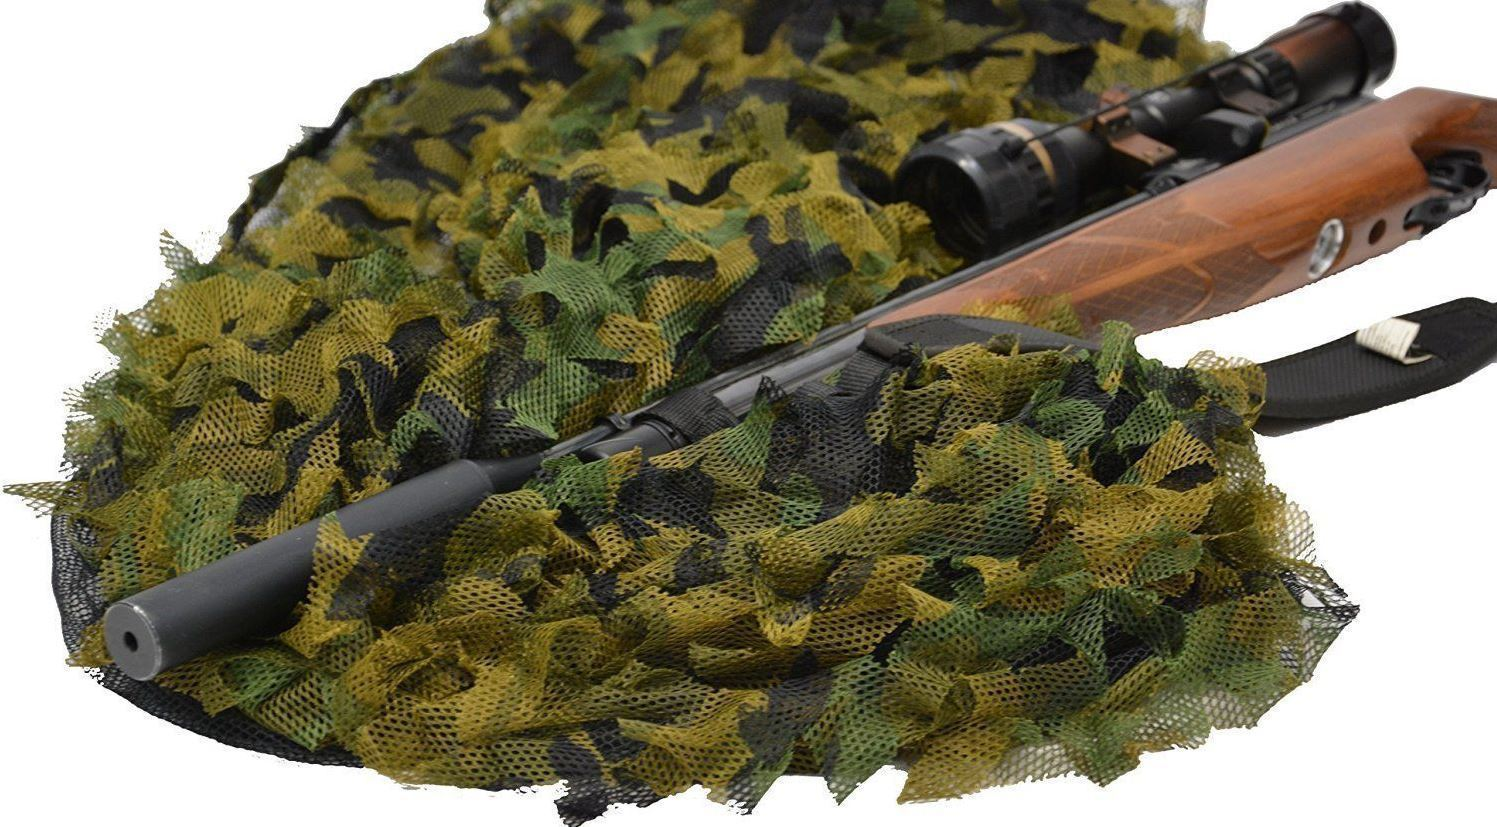 12 x half shell high defo pigeon decoys + 4m x 1.5m premium camo net - reid outdoors